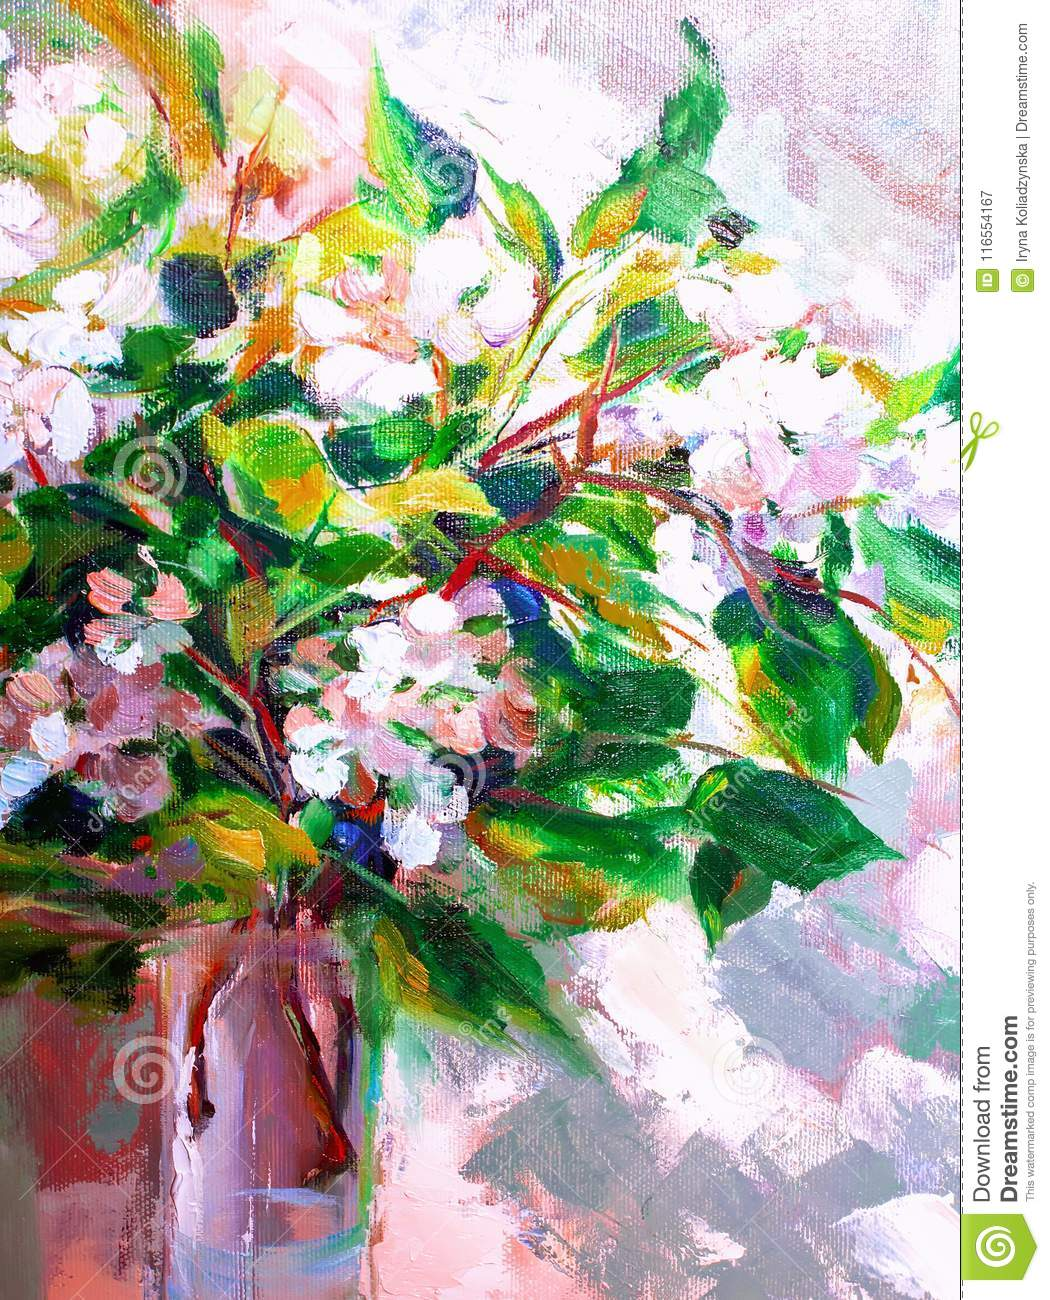 oil painting impressionism style